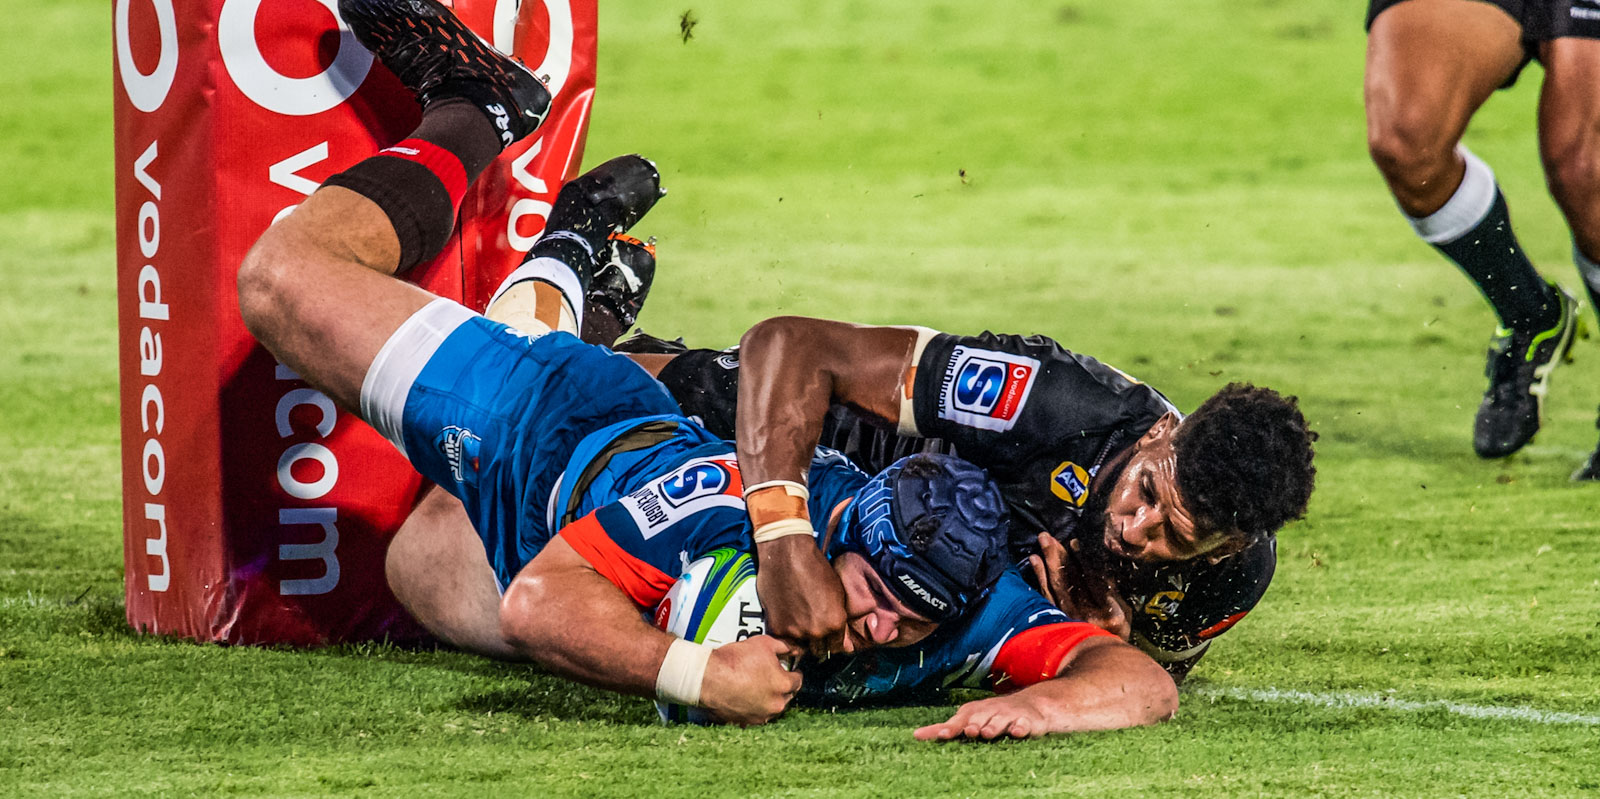 Marco van Staden goes over for his first try.